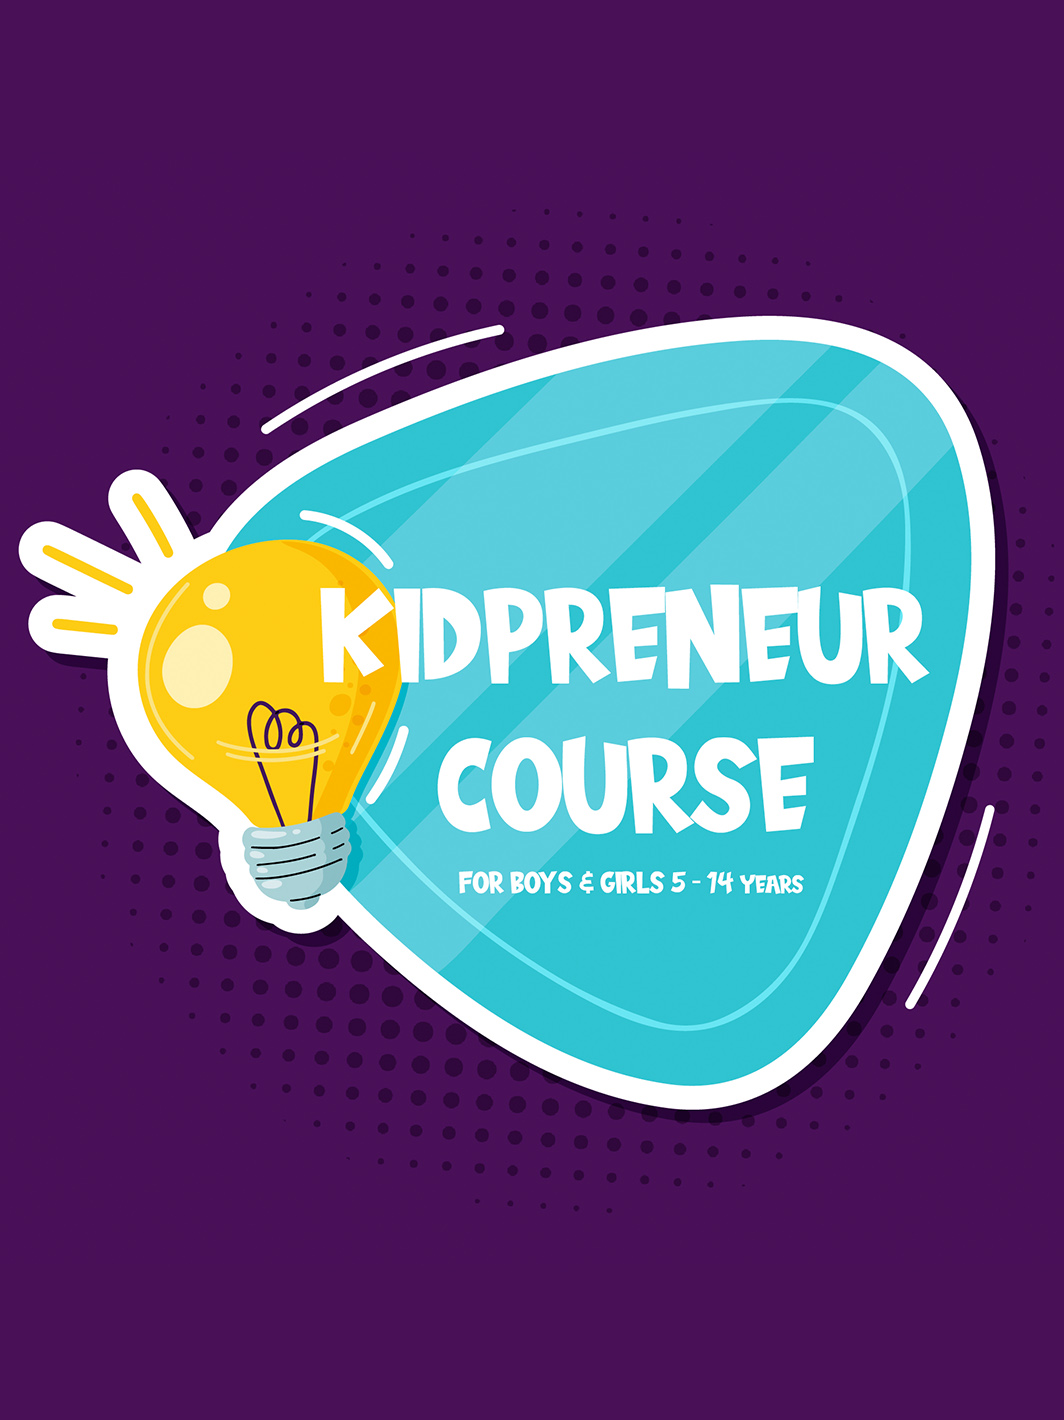 Kidpreneur course for boys and girls 5-14 years